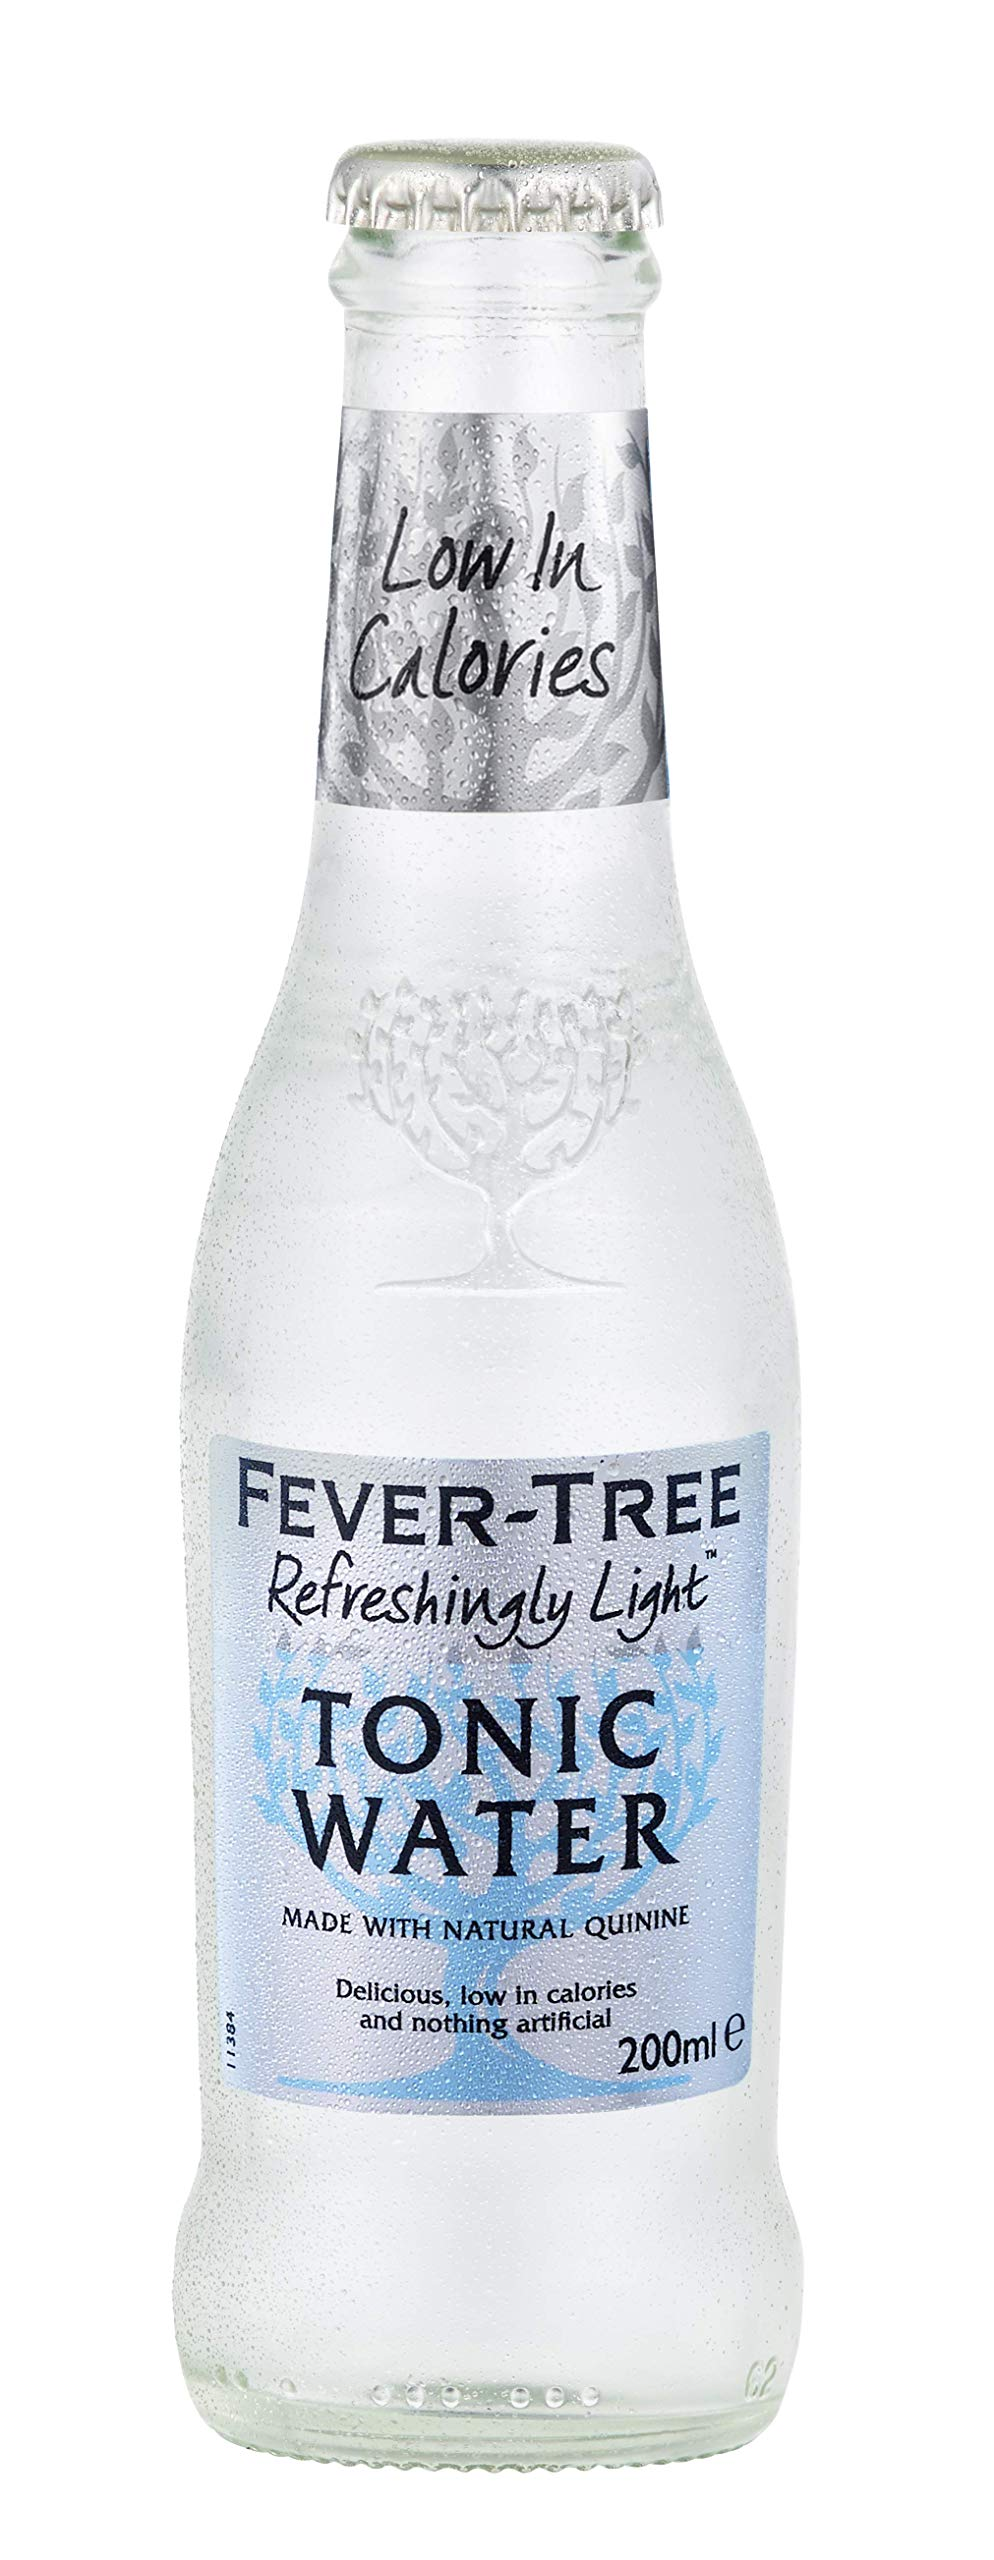 Fever-Tree Naturally Light Tonic Water, 6.8 Ounce Glass Bottles (Pack of 24)